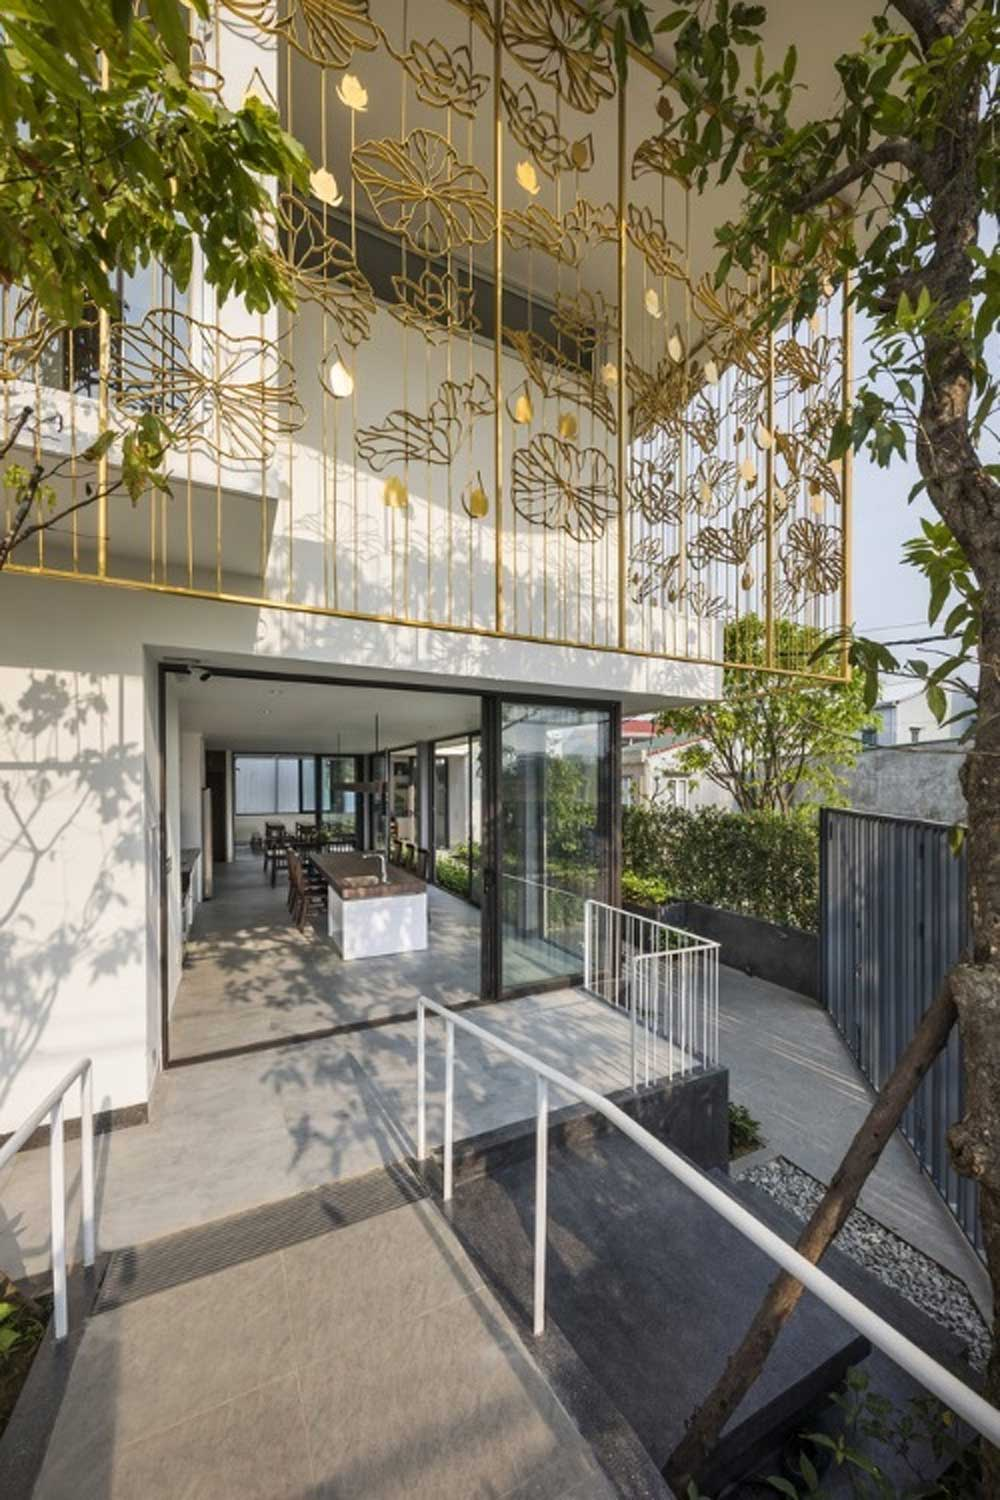 Hue house,  disabled access, the good life, ease of access, 257-meter-square house,  ramp system, ventilation and air convection